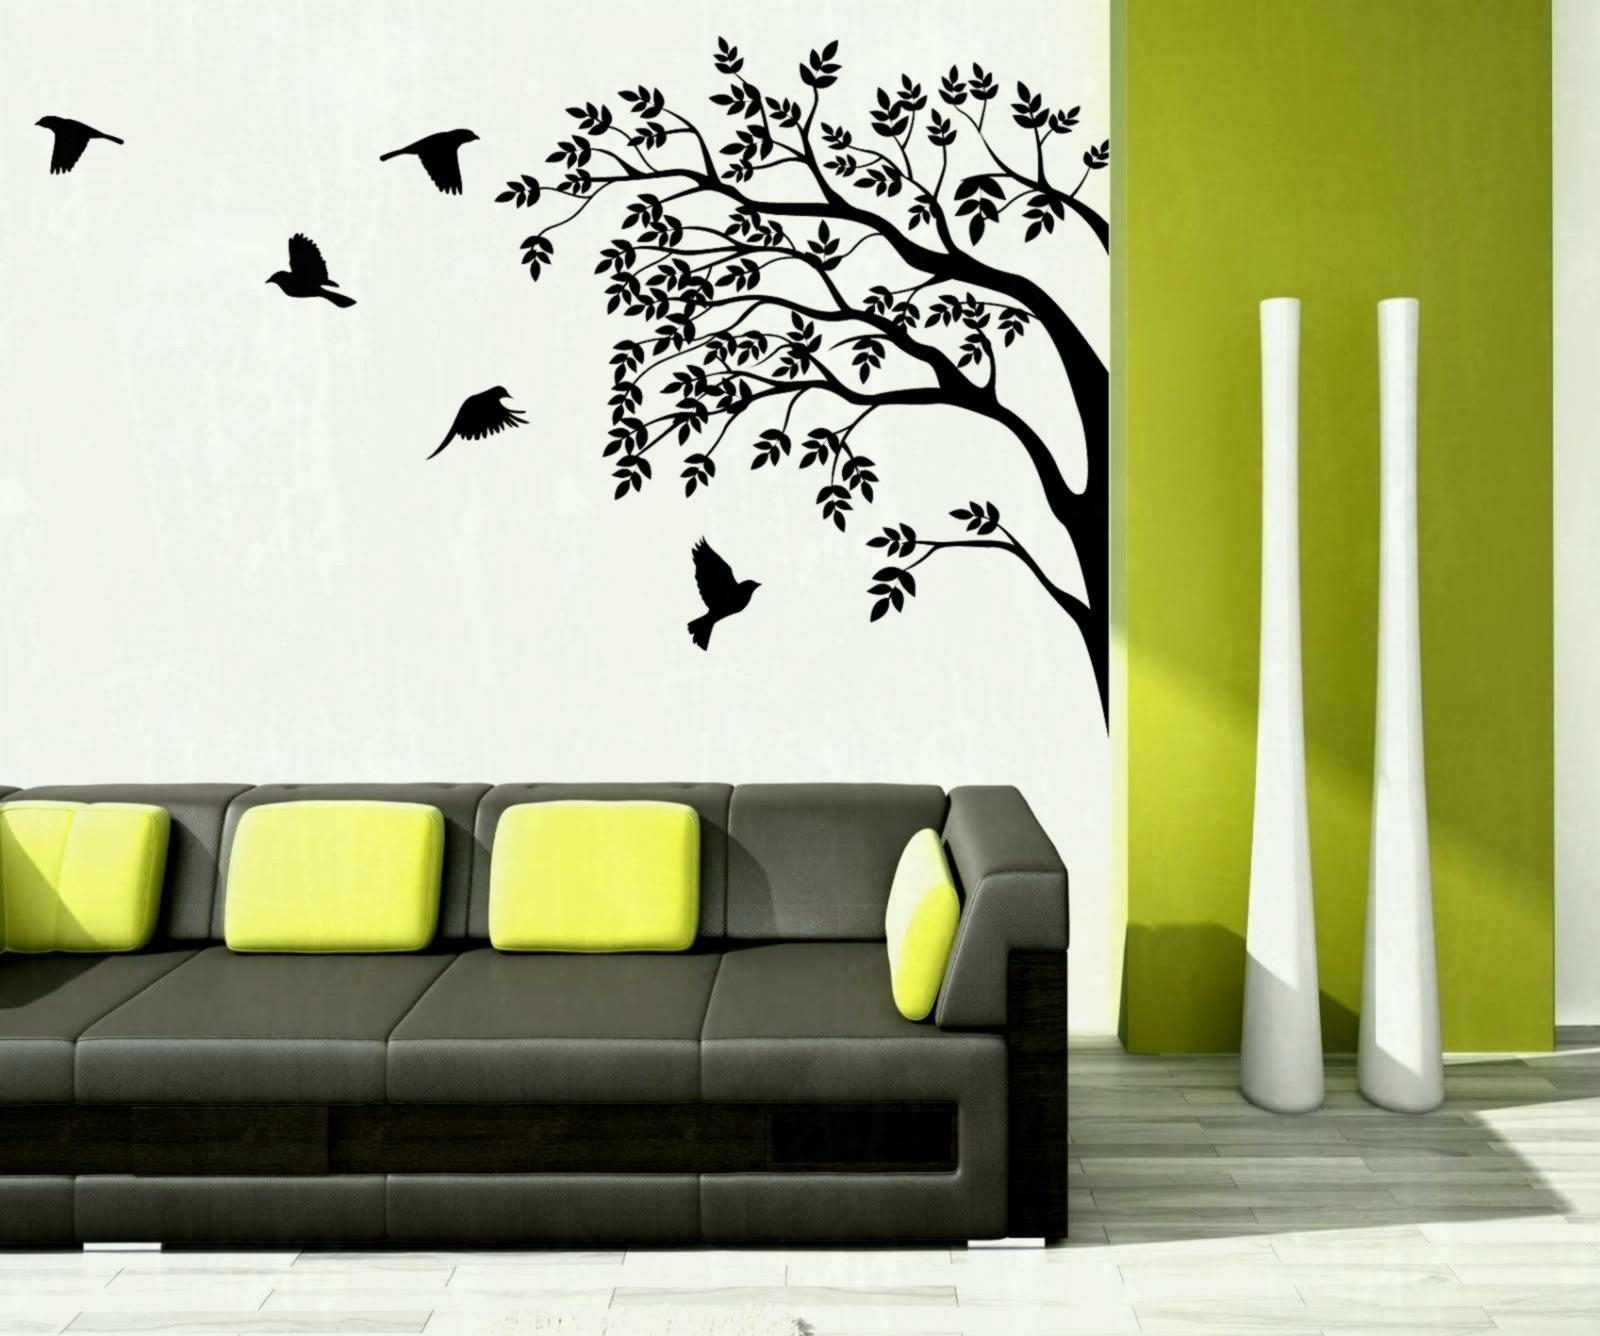 Living Room Bedroom Wall Art Paintings And Painting Ideas Together for Bedroom Wall Art (Image 13 of 20)